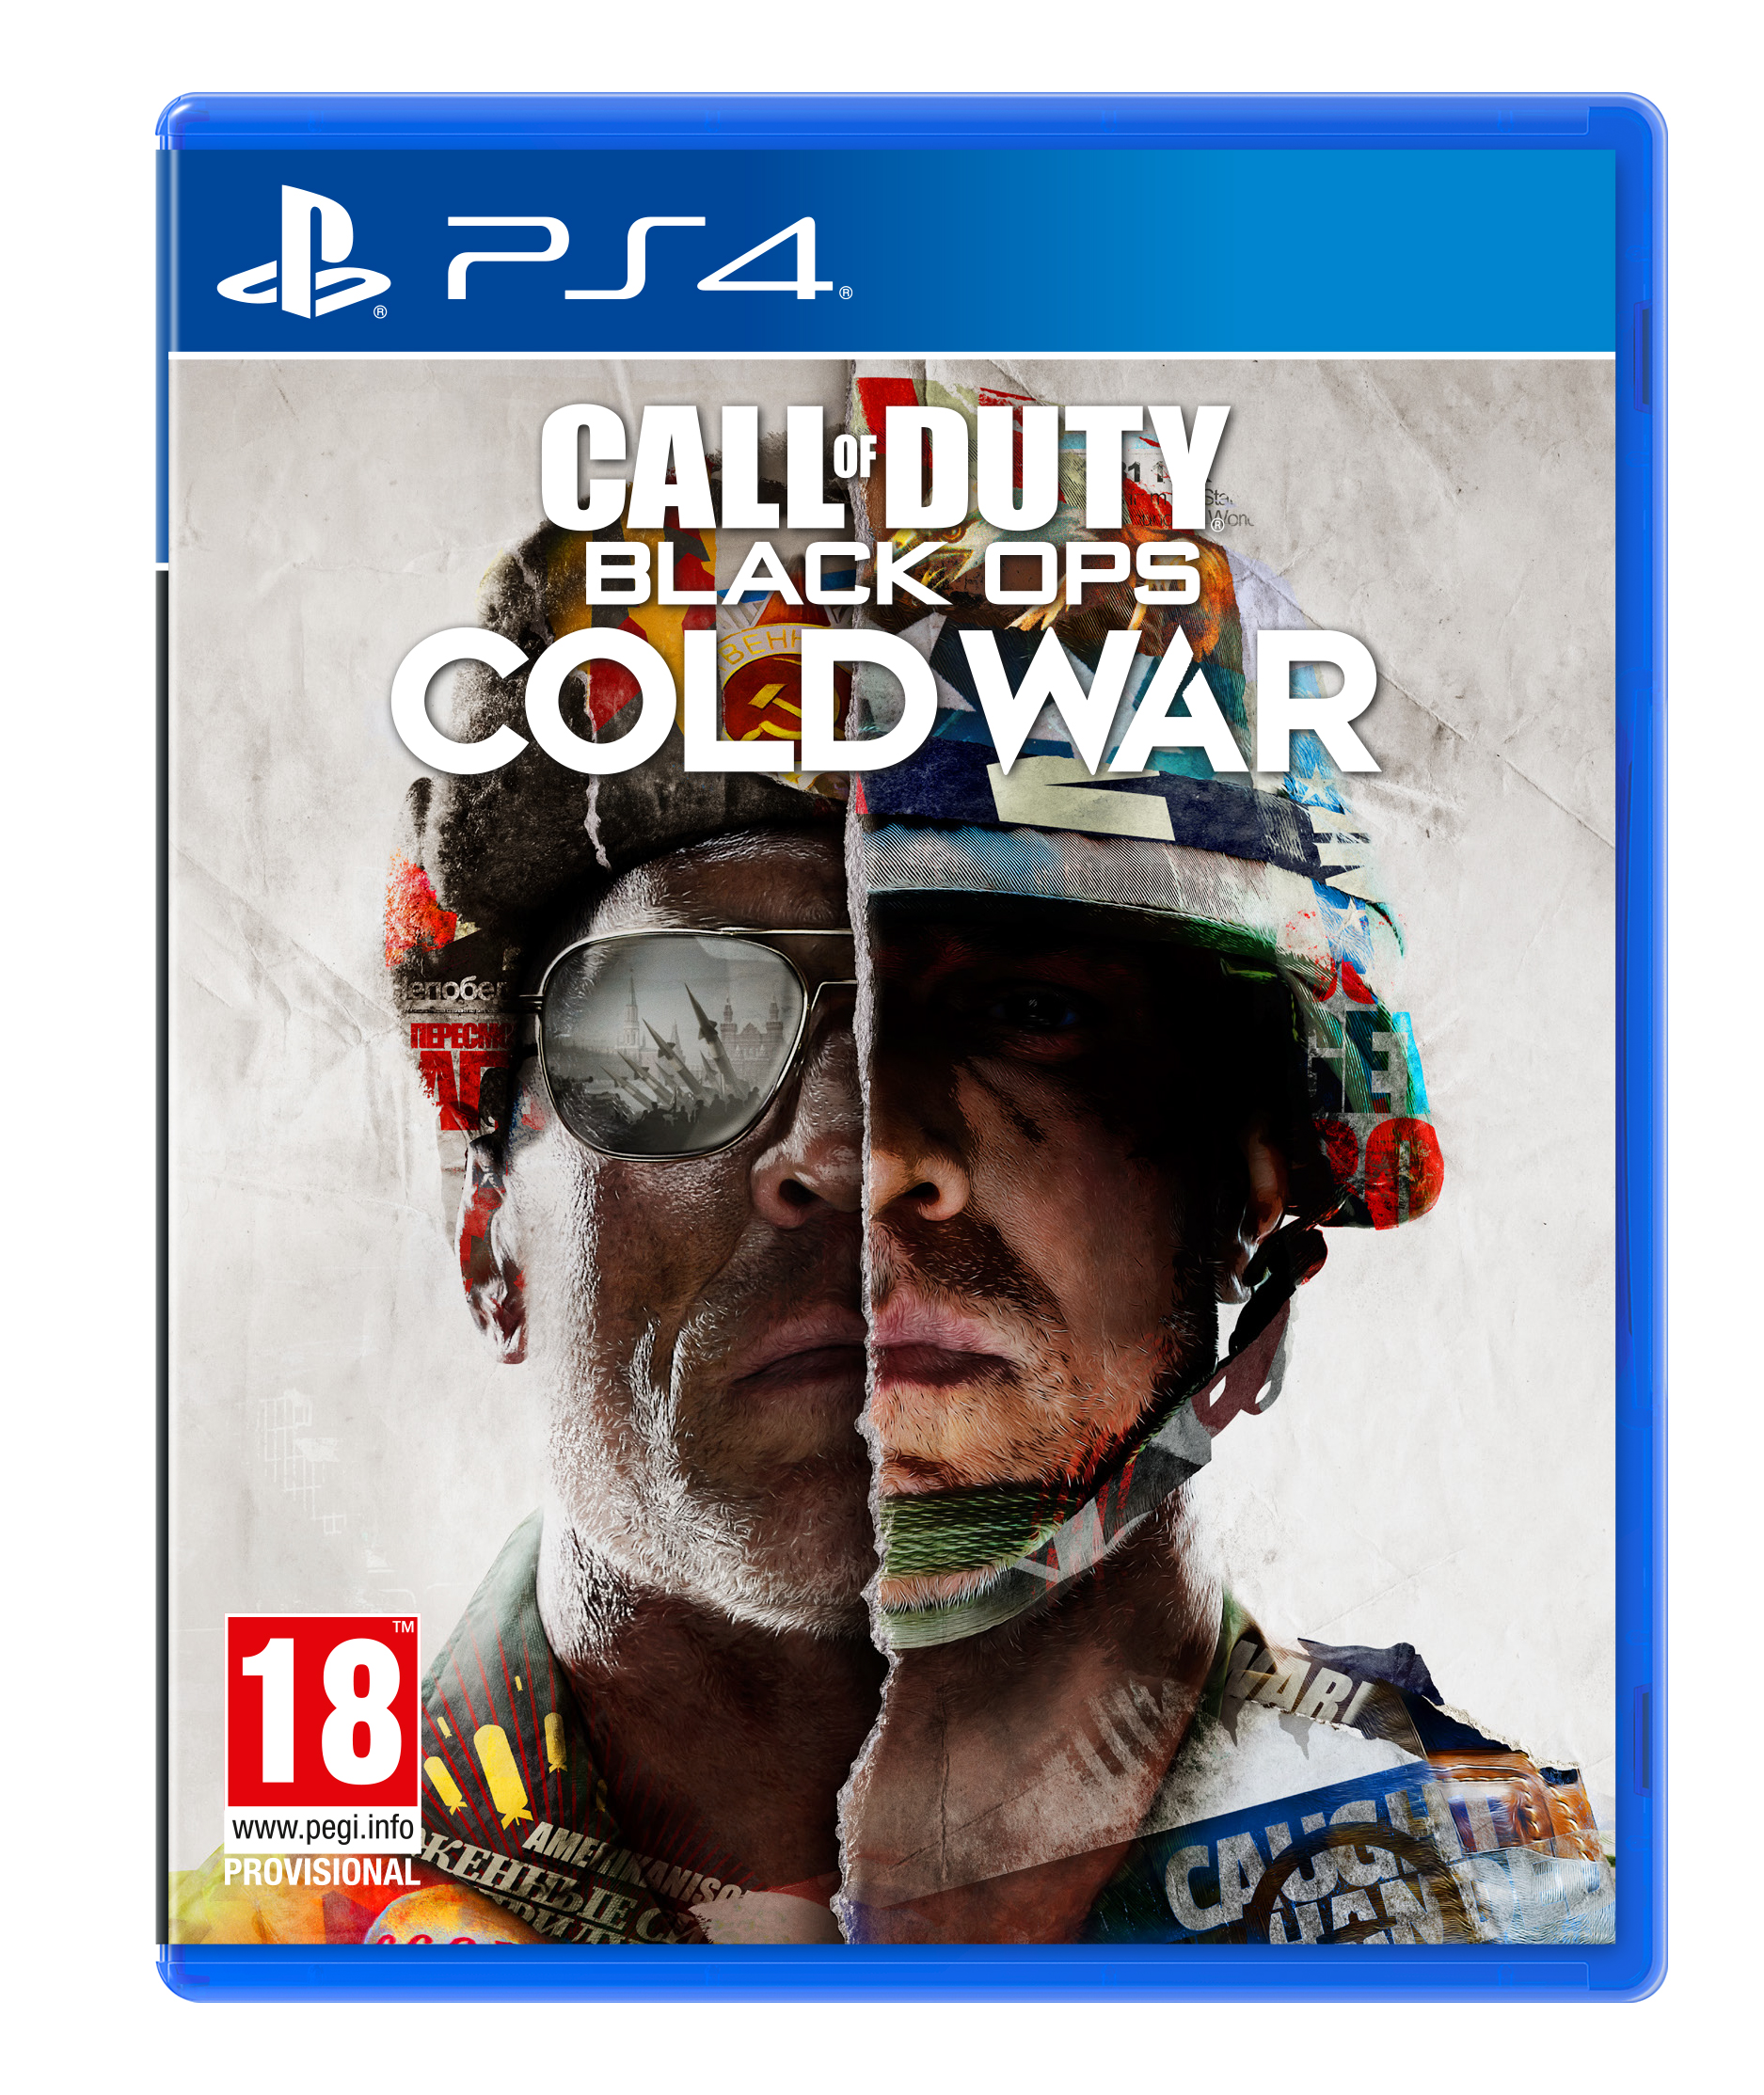 https://www.bigbang.si/upload/catalog/product/679779/call-of-duty-black-ops-cold-war-ps4-box-45771_5f51fc24ced0c.jpg